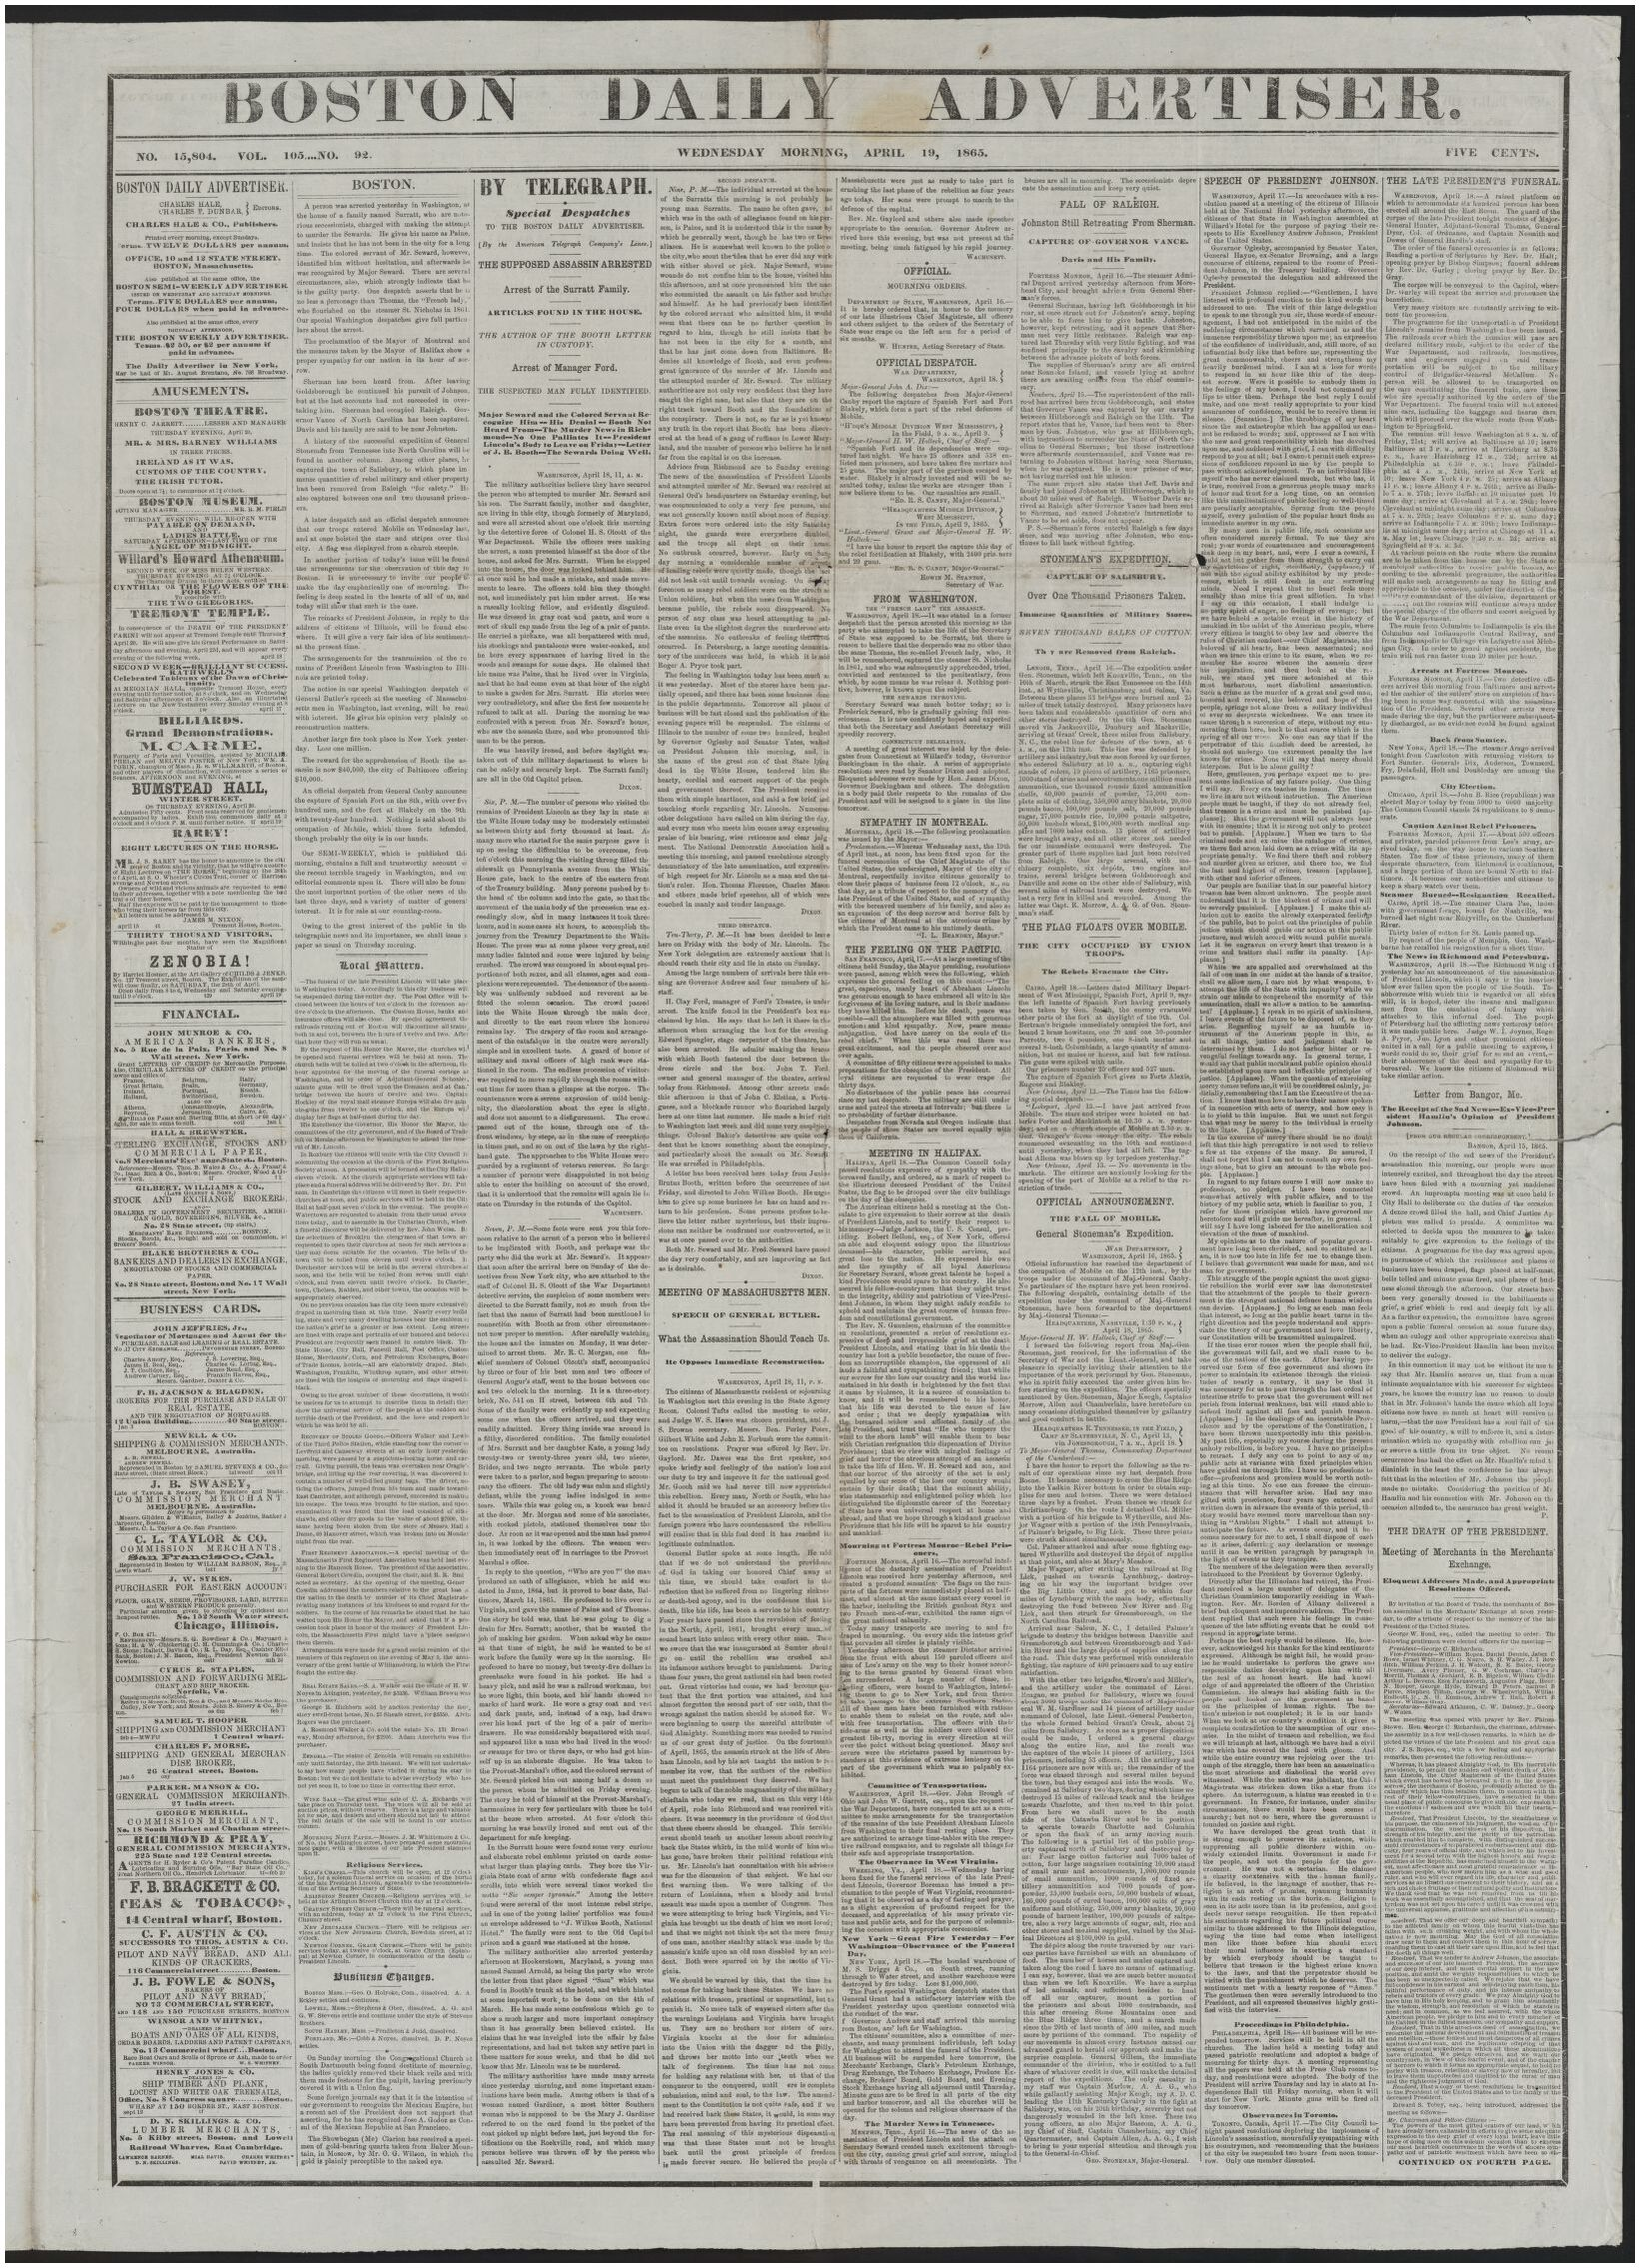 North Of Boston Business Magazine Image 1 Of Boston Daily Advertiser [newspaper] April 19 1865